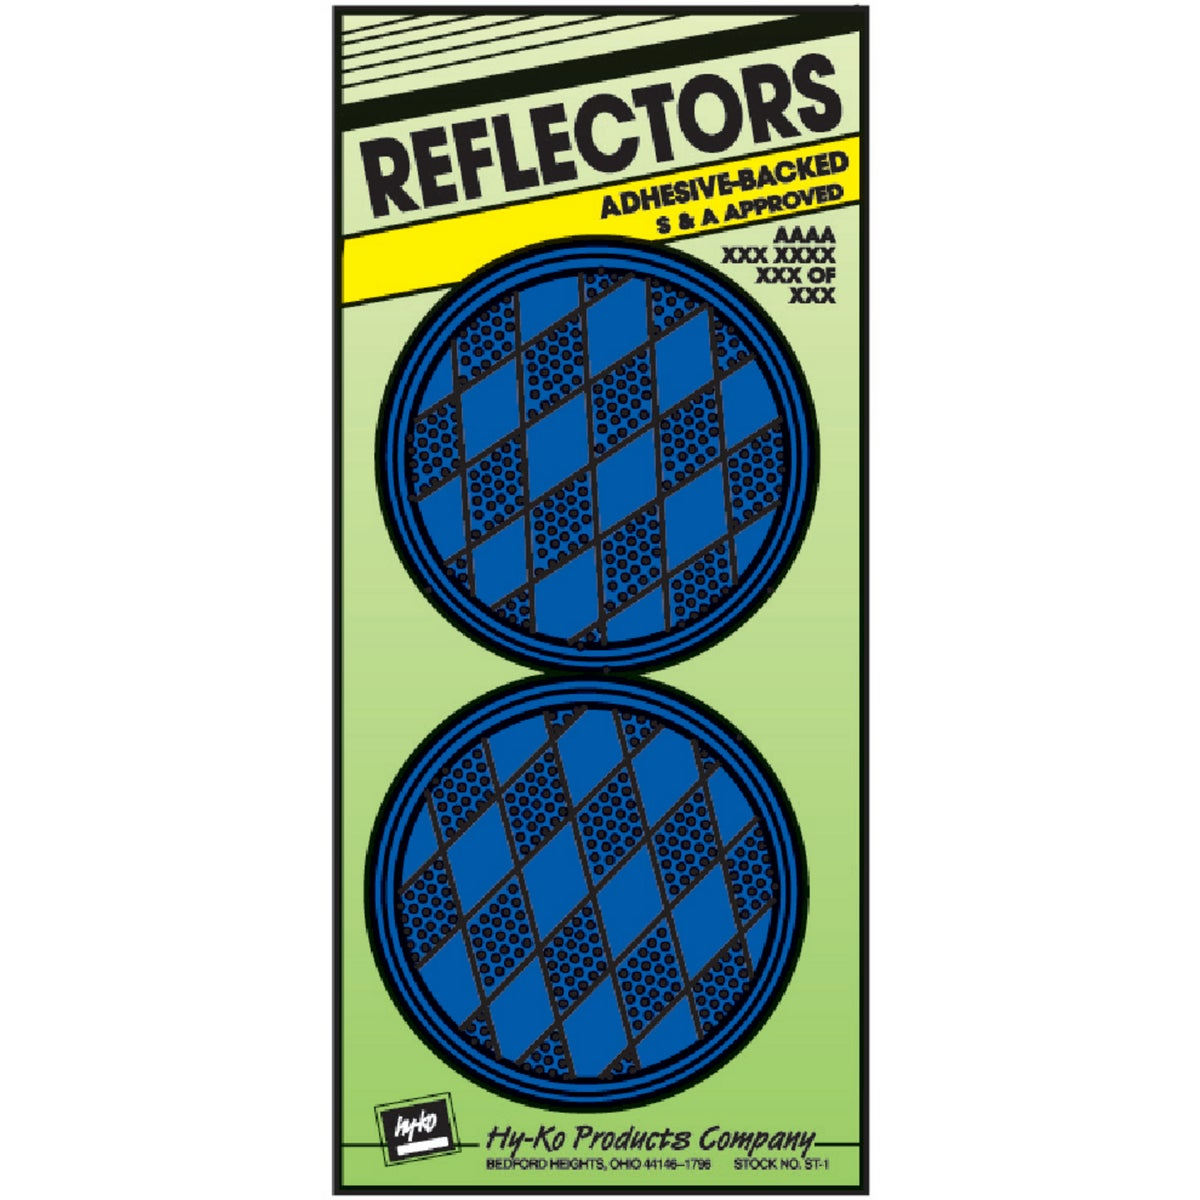 PRESS ON BLUE REFLECTORS - CDRF-4B by Hy Ko Prods Co